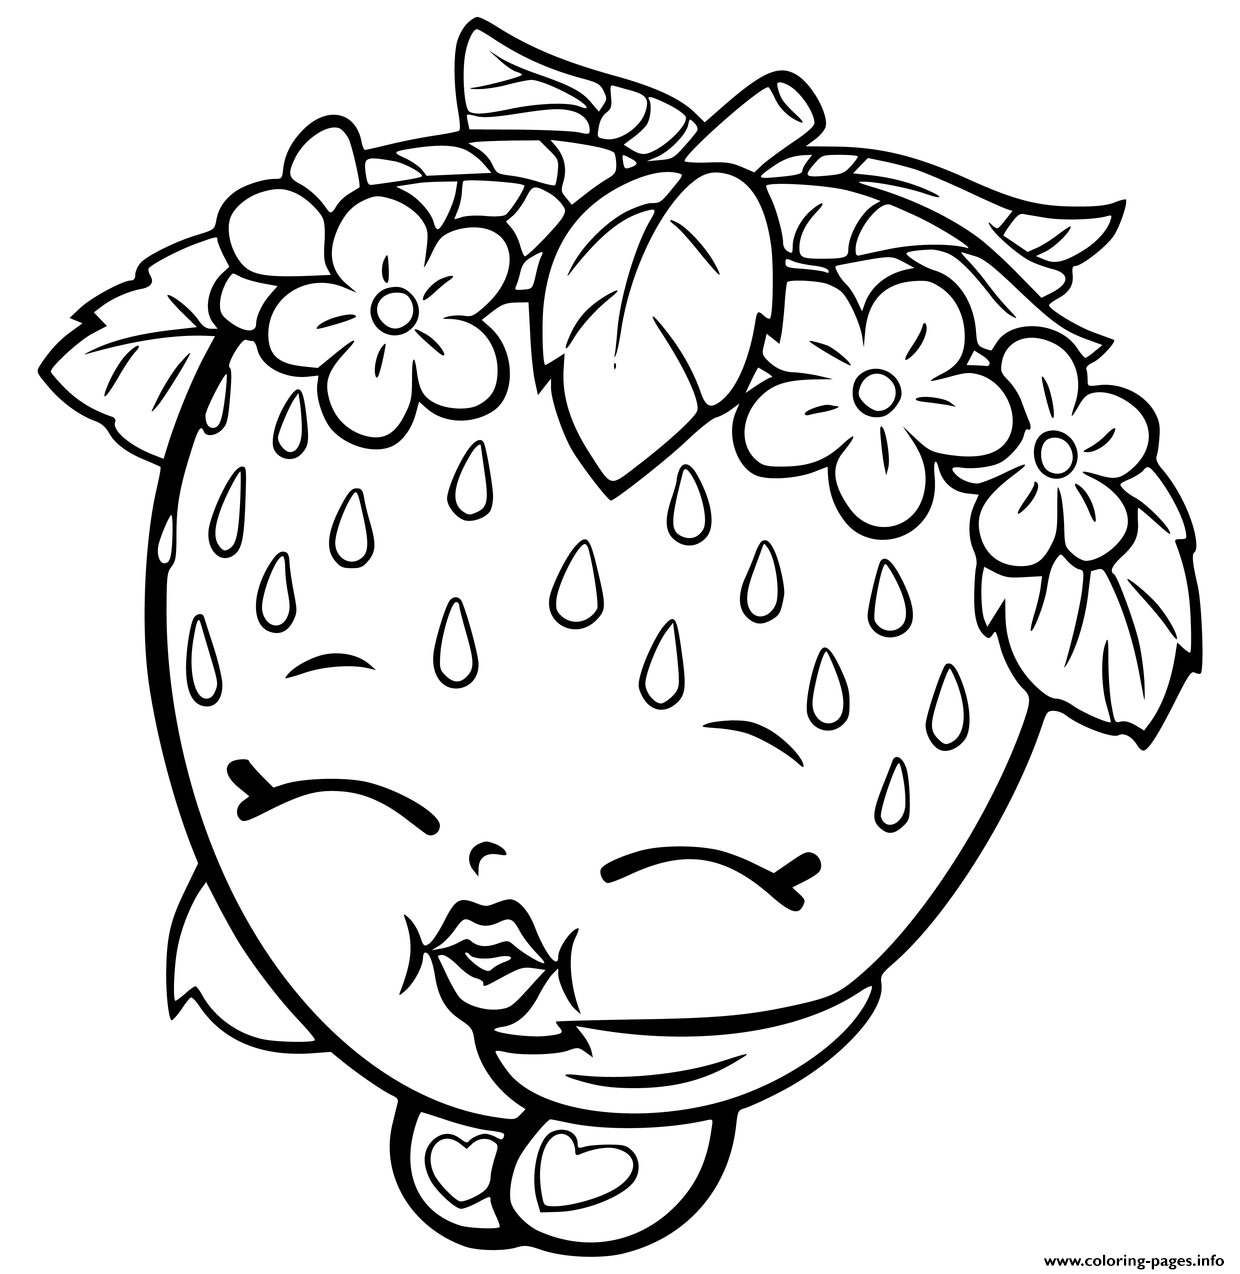 Print Shopkins Strawberry Coloring Pages